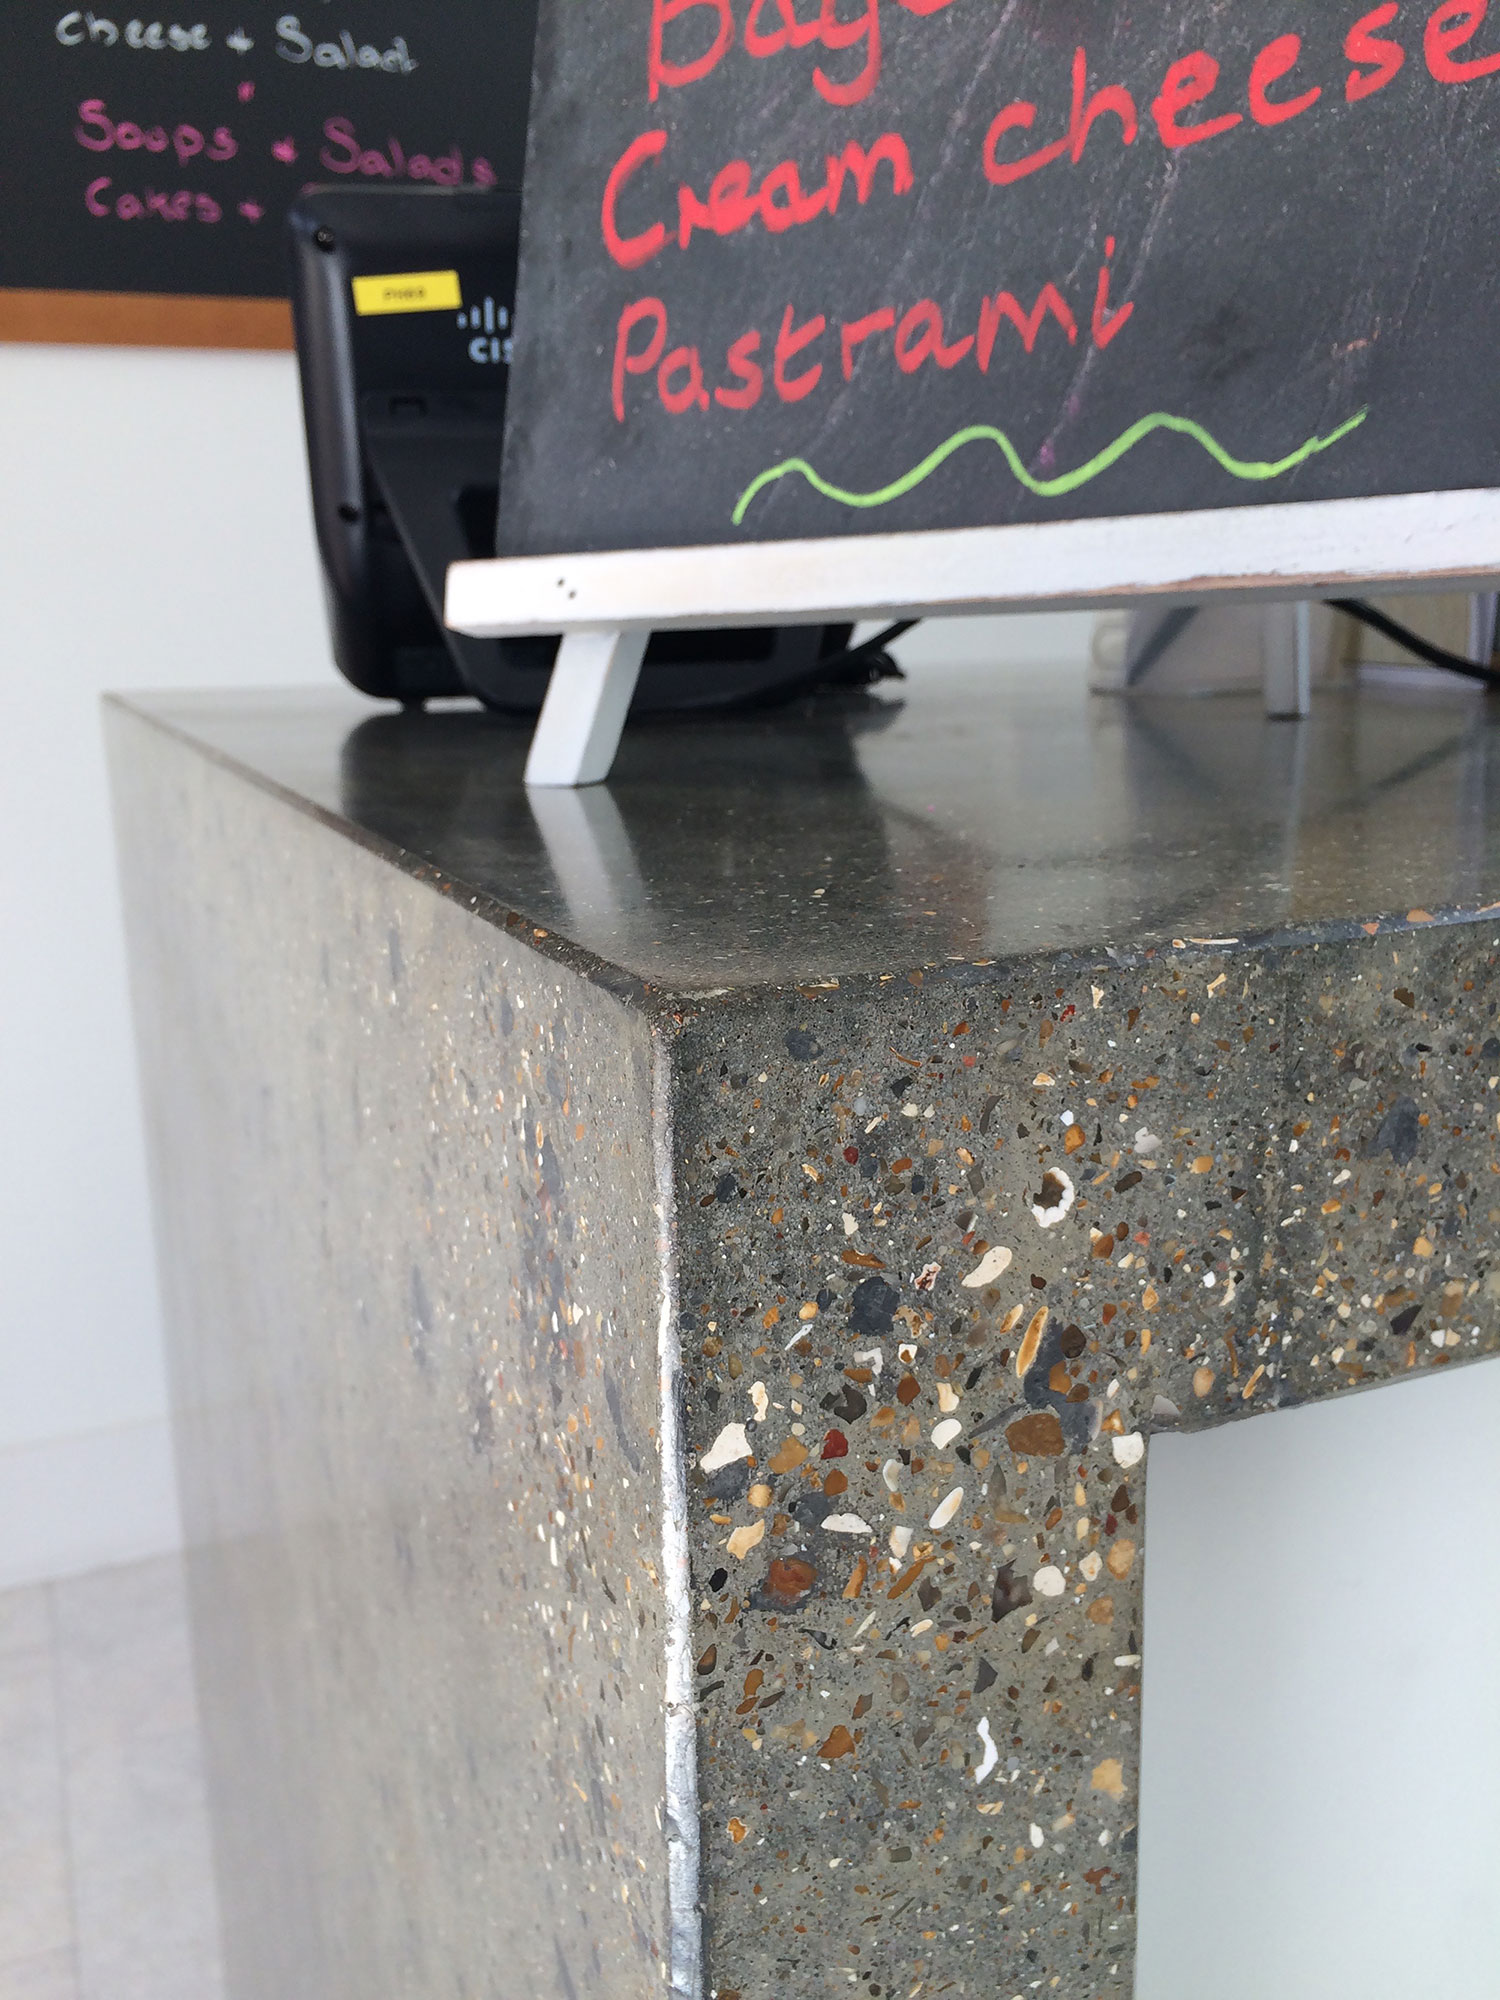 Conscious Forms - st raphaels hospice cheam orangery cafe polished concrete service counter with waterfall ends standard grey exposed polished aggregate finish detail